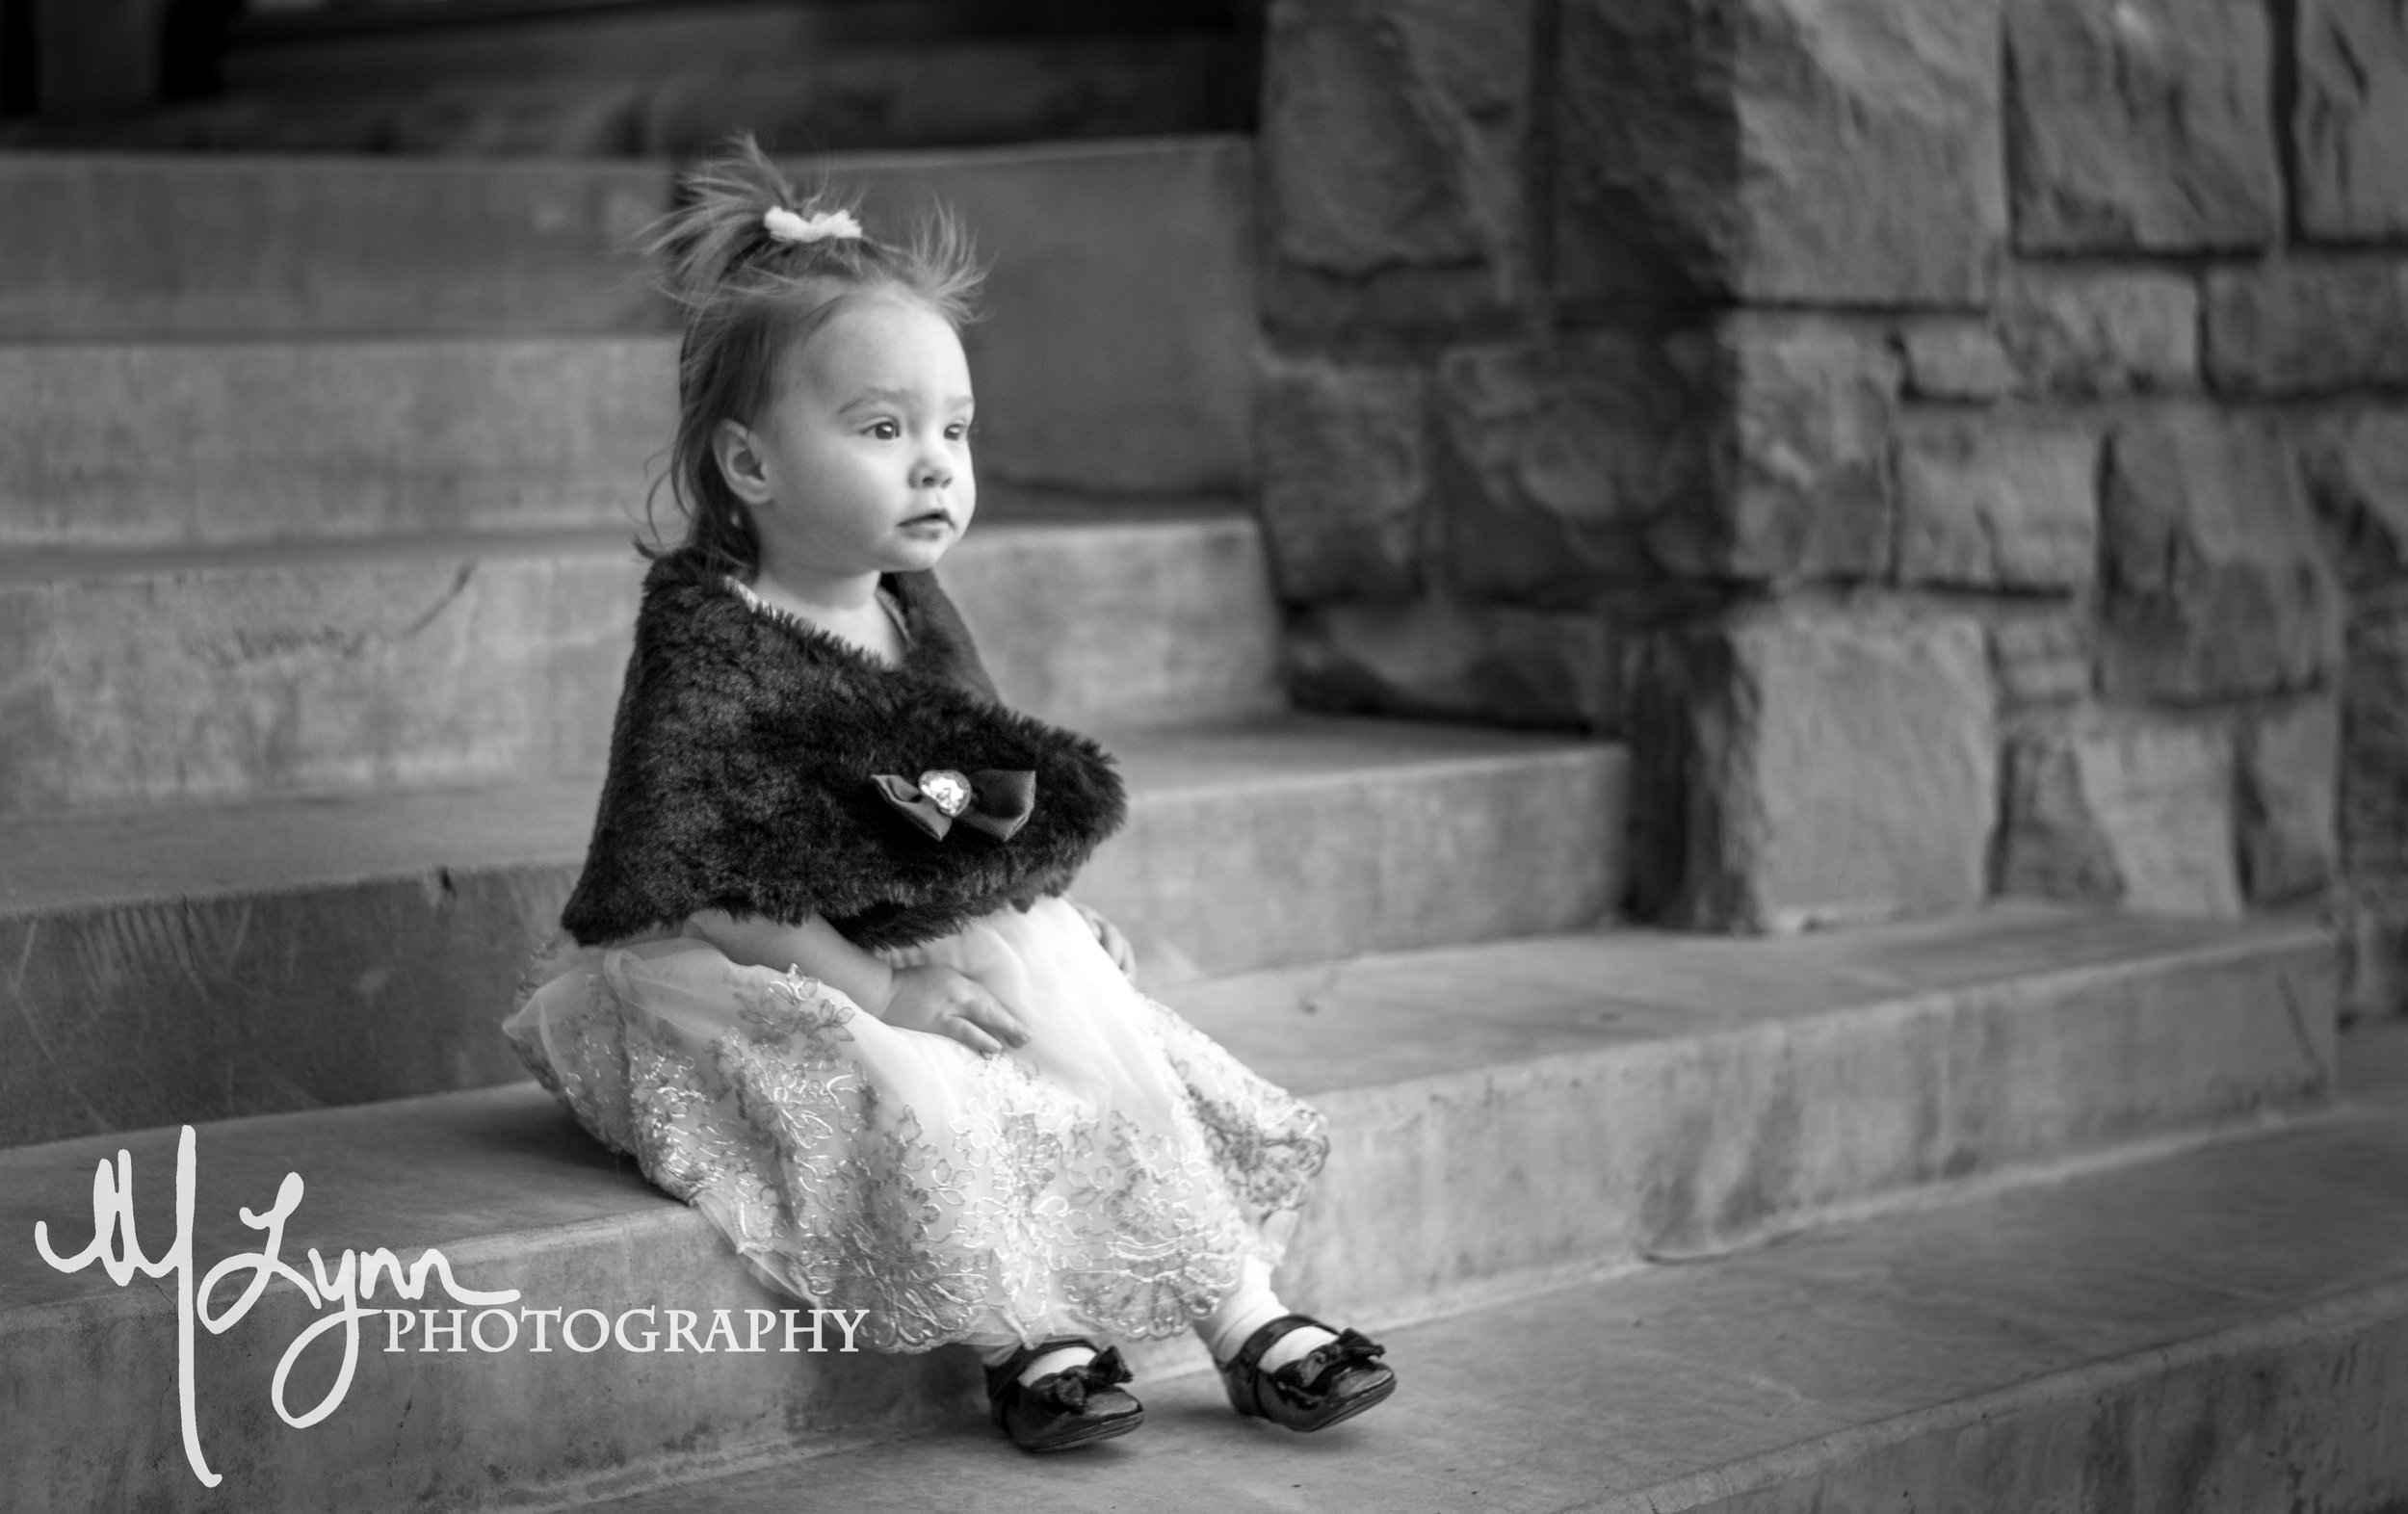 classic girl on stairs black and white 6743.jpg